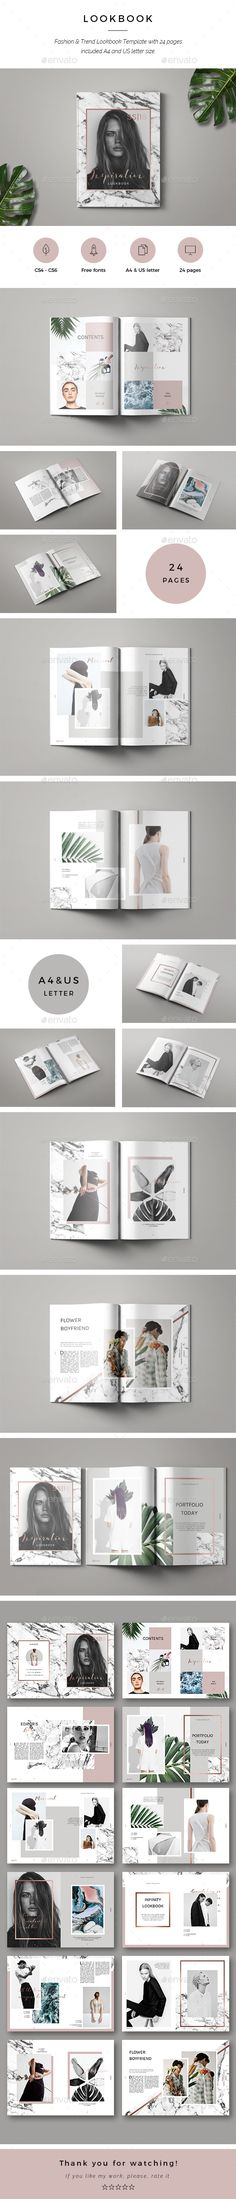 Inspiration Lookbook by GrizzlyDesign Features:24 unique pages Premade magazine cover Size A4 (210×297)& Size US letter (215,9 × 279,4) Indd (InDesign format) Idml (InD